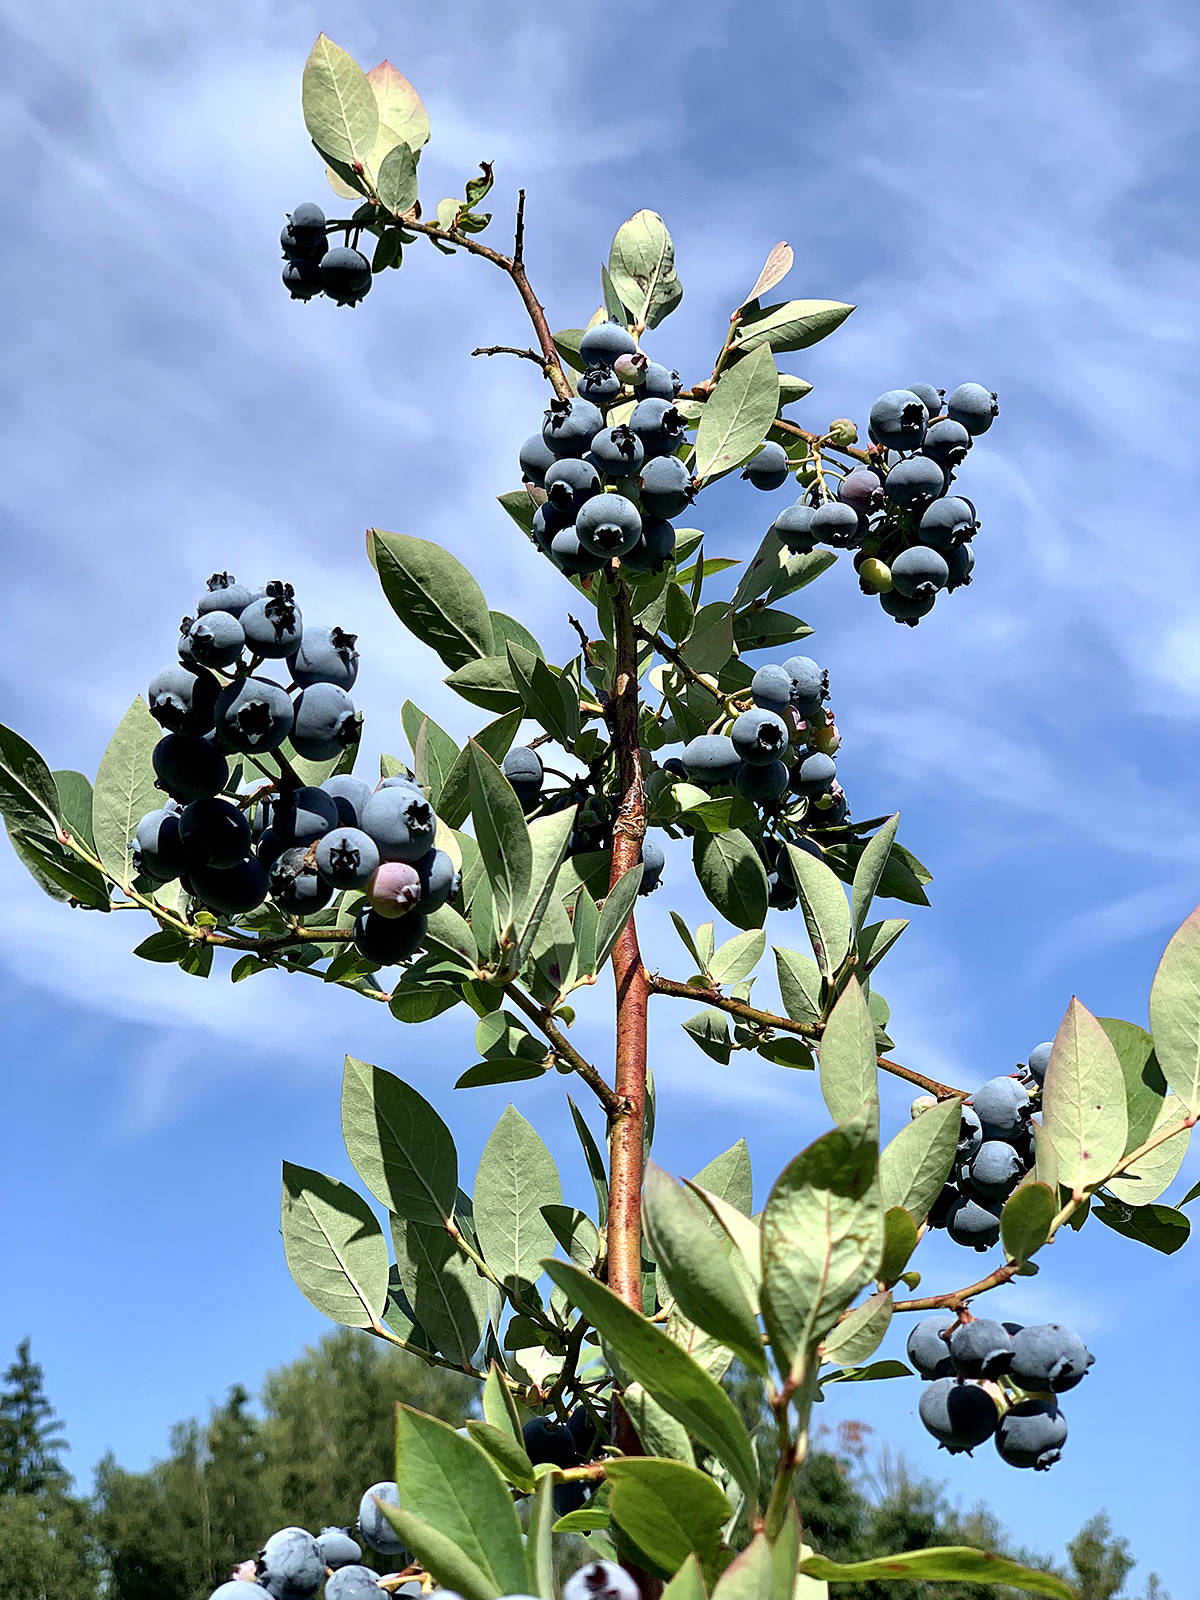 """Xinguang Yang has been in  Langley for a little more than a year now, and said one of his favourite things to do is pick blueberries at Langley farms. """"I like Langley very much,"""" he shared. (Special to the Langley Advance Times)"""